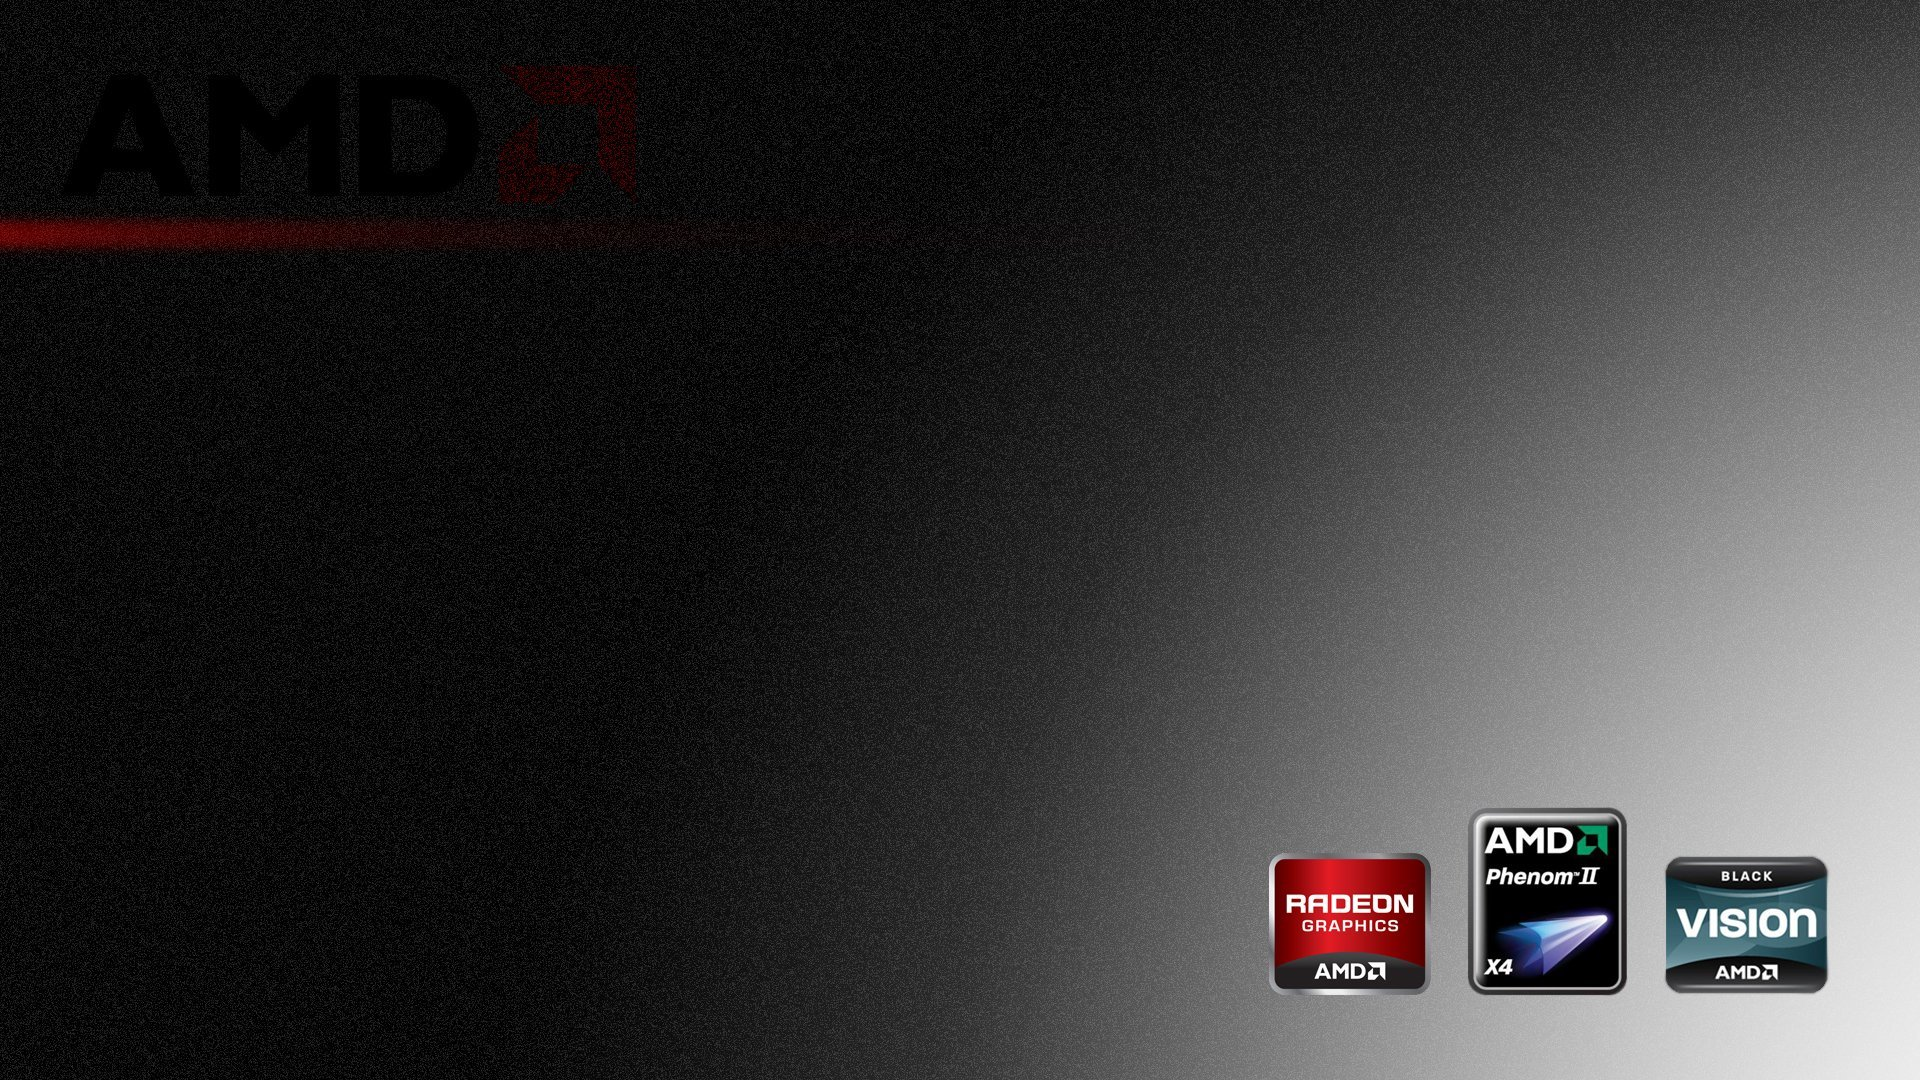 awesome amd free wallpaper id:383478 for hd 1080p desktop